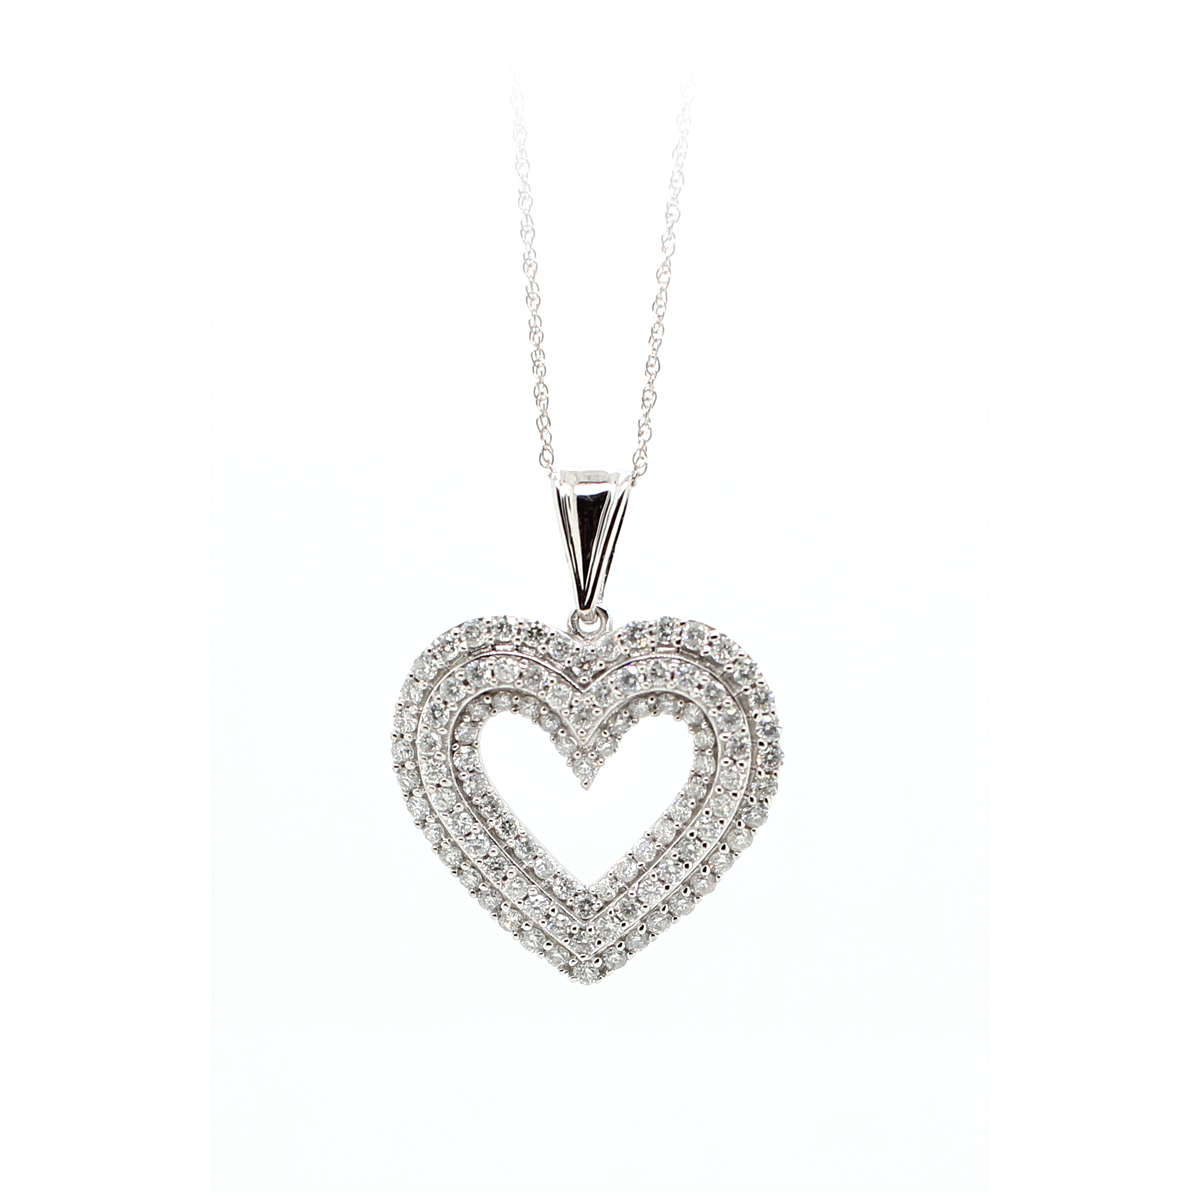 10 Karat White Gold Three Row Diamond Cutout Heart Pendant